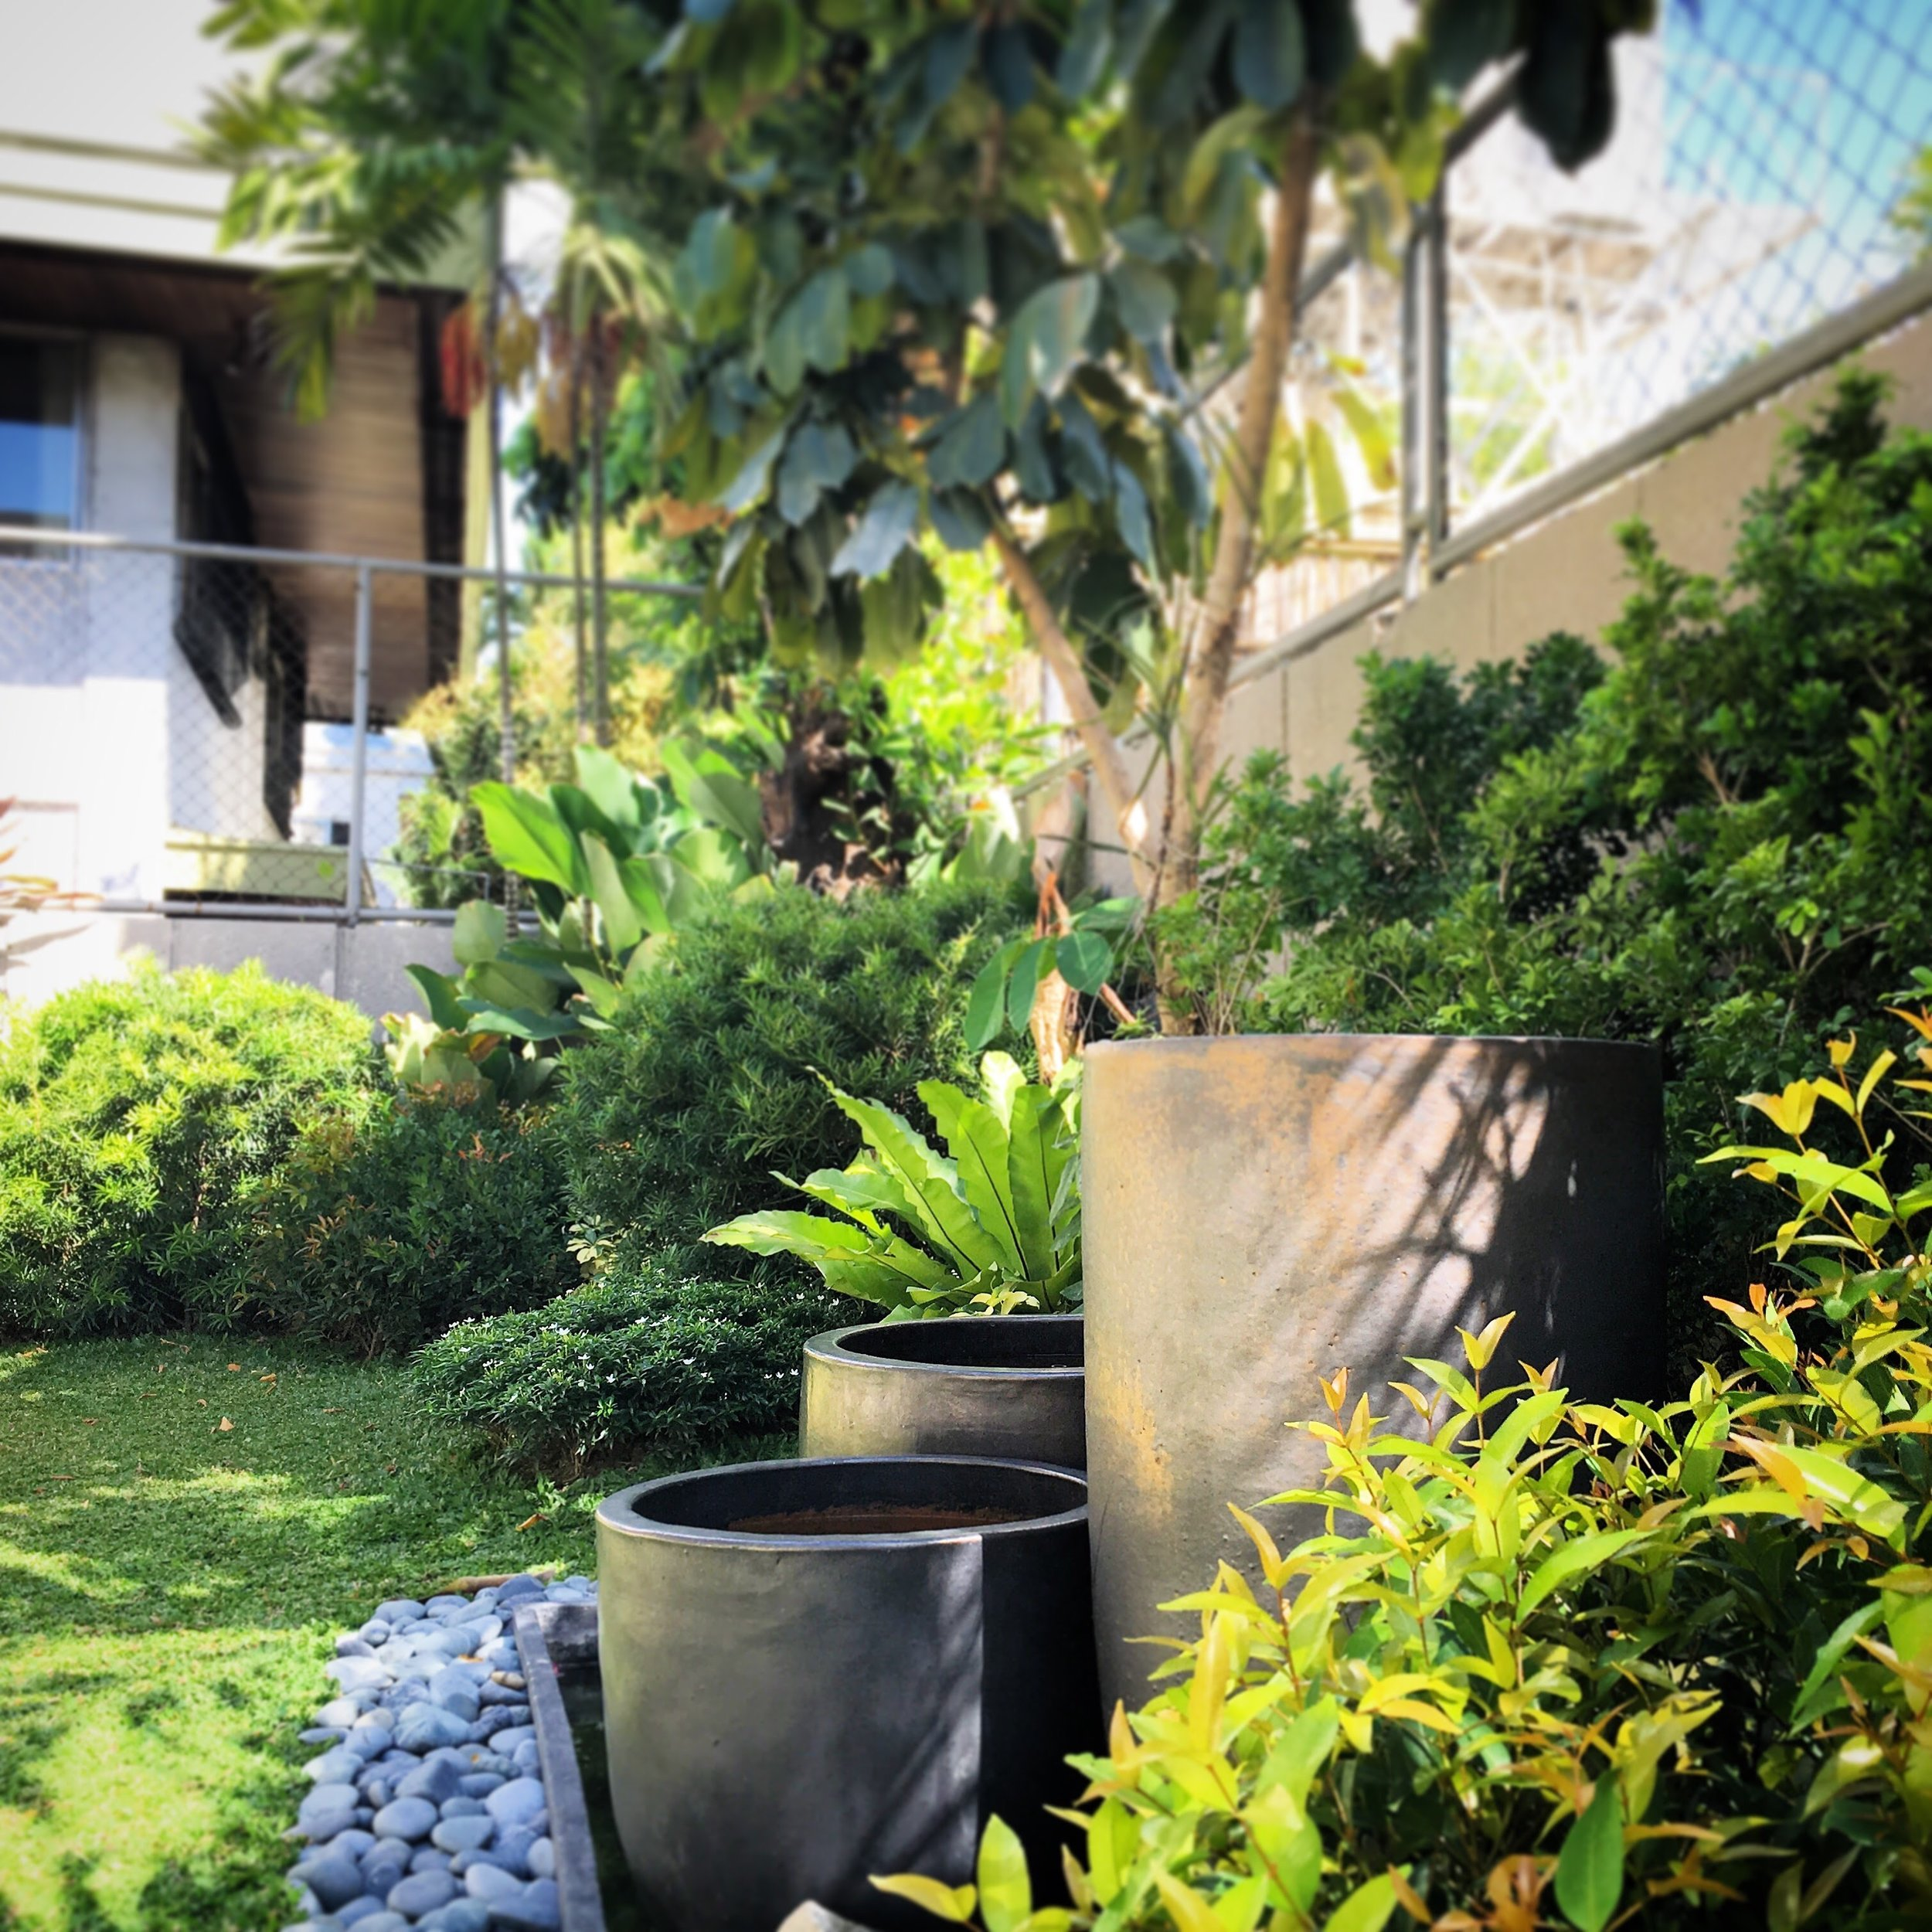 RESIDENTIAL OWNER - PRIVATE RESIDENTIAL GARDENS